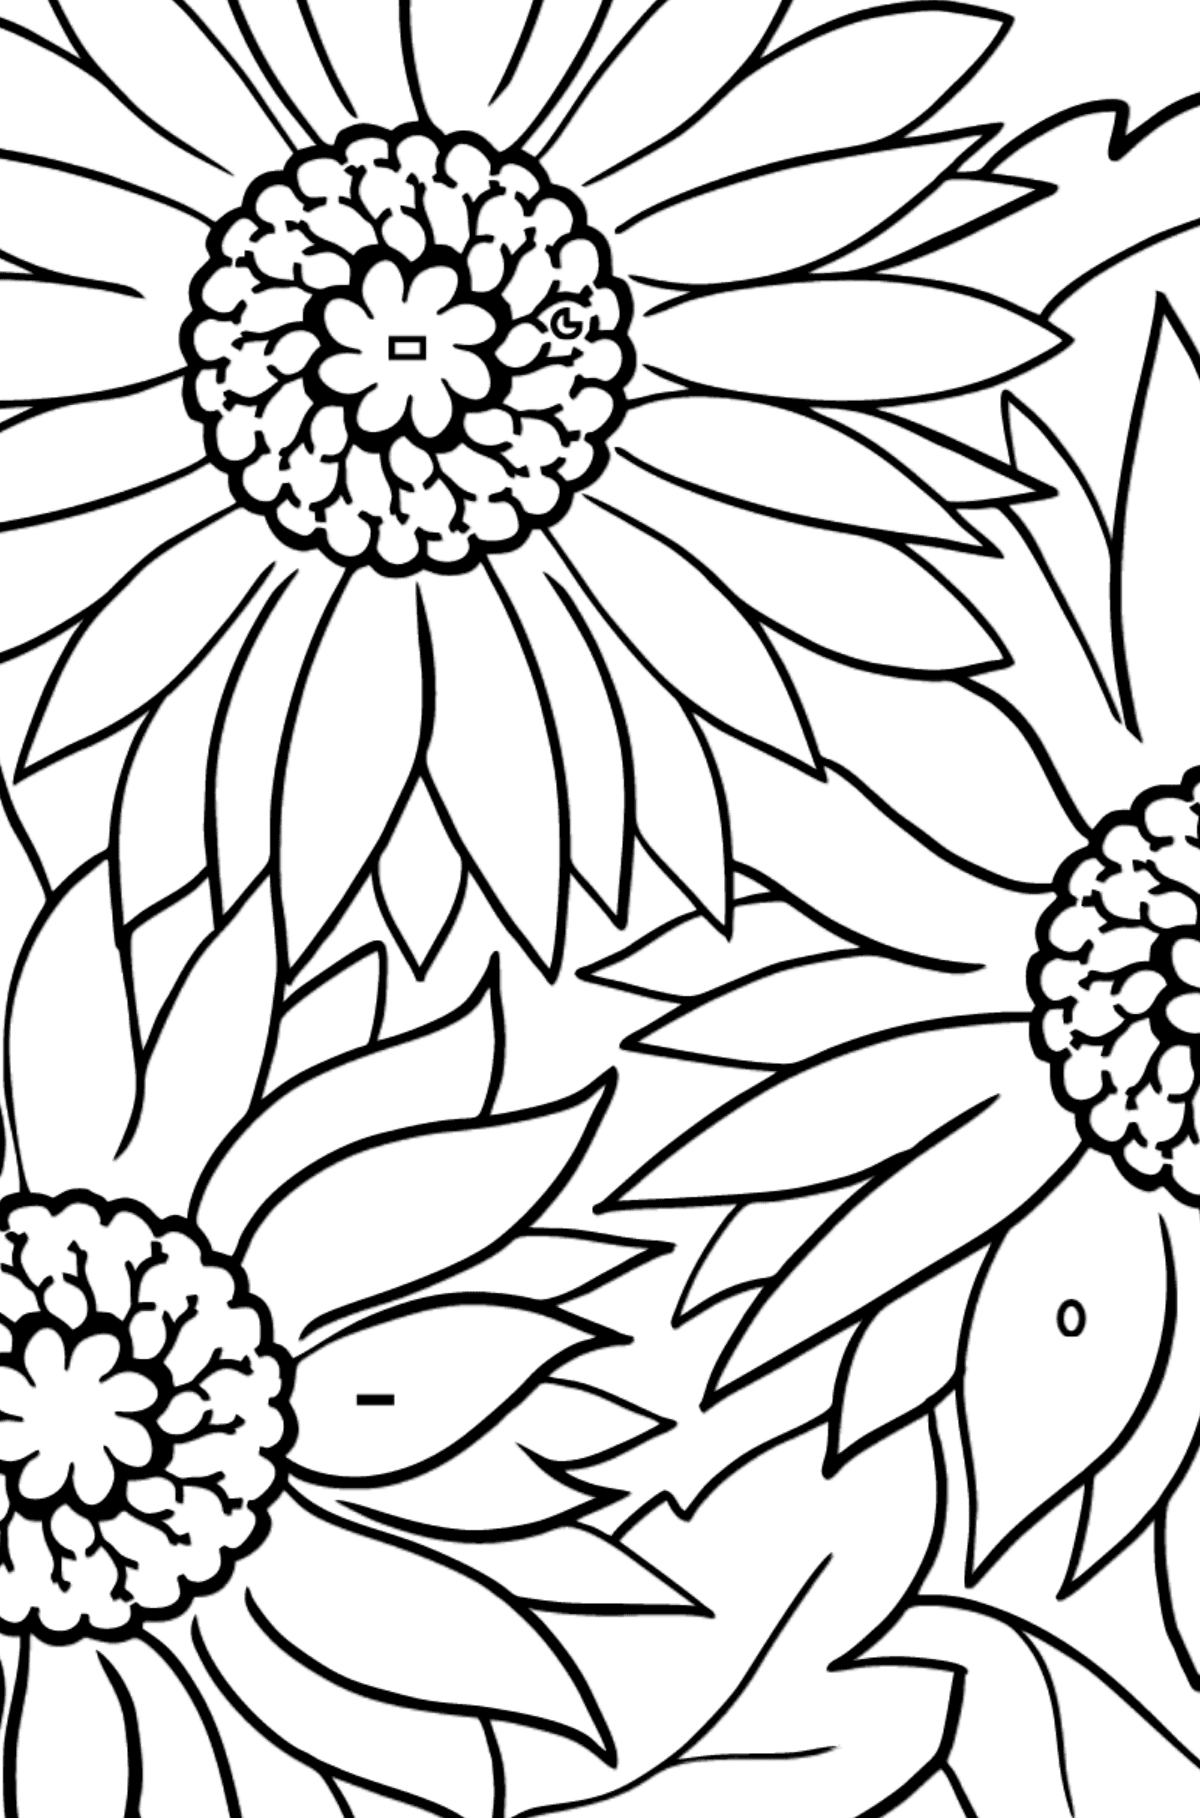 Coloring Flowers for the Youngest Children - Pink Gerbera - Coloring by Symbols and Geometric Shapes for Kids